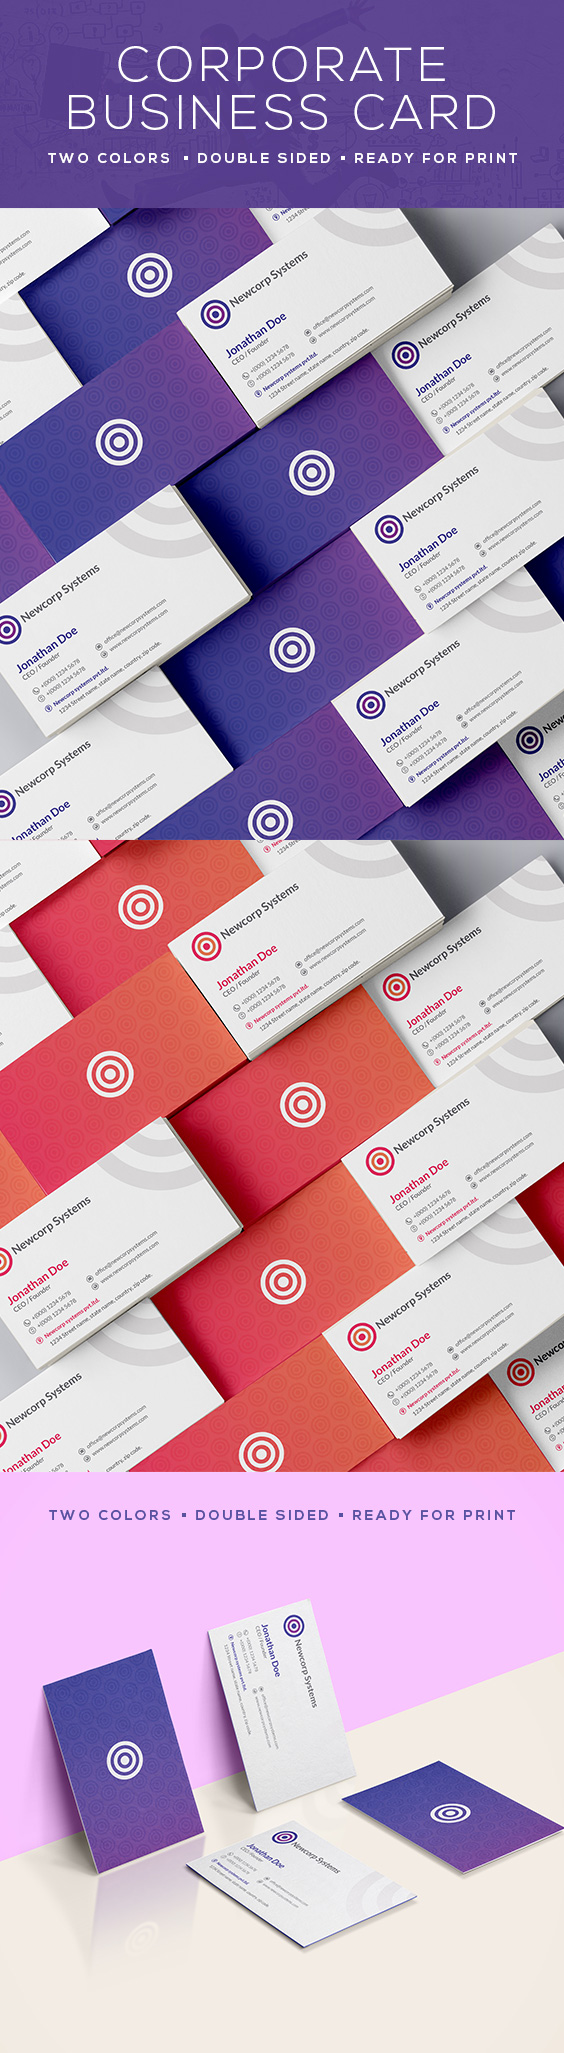 Corporate business card 33 creative business cards pinterest corporate business card 33 reheart Images